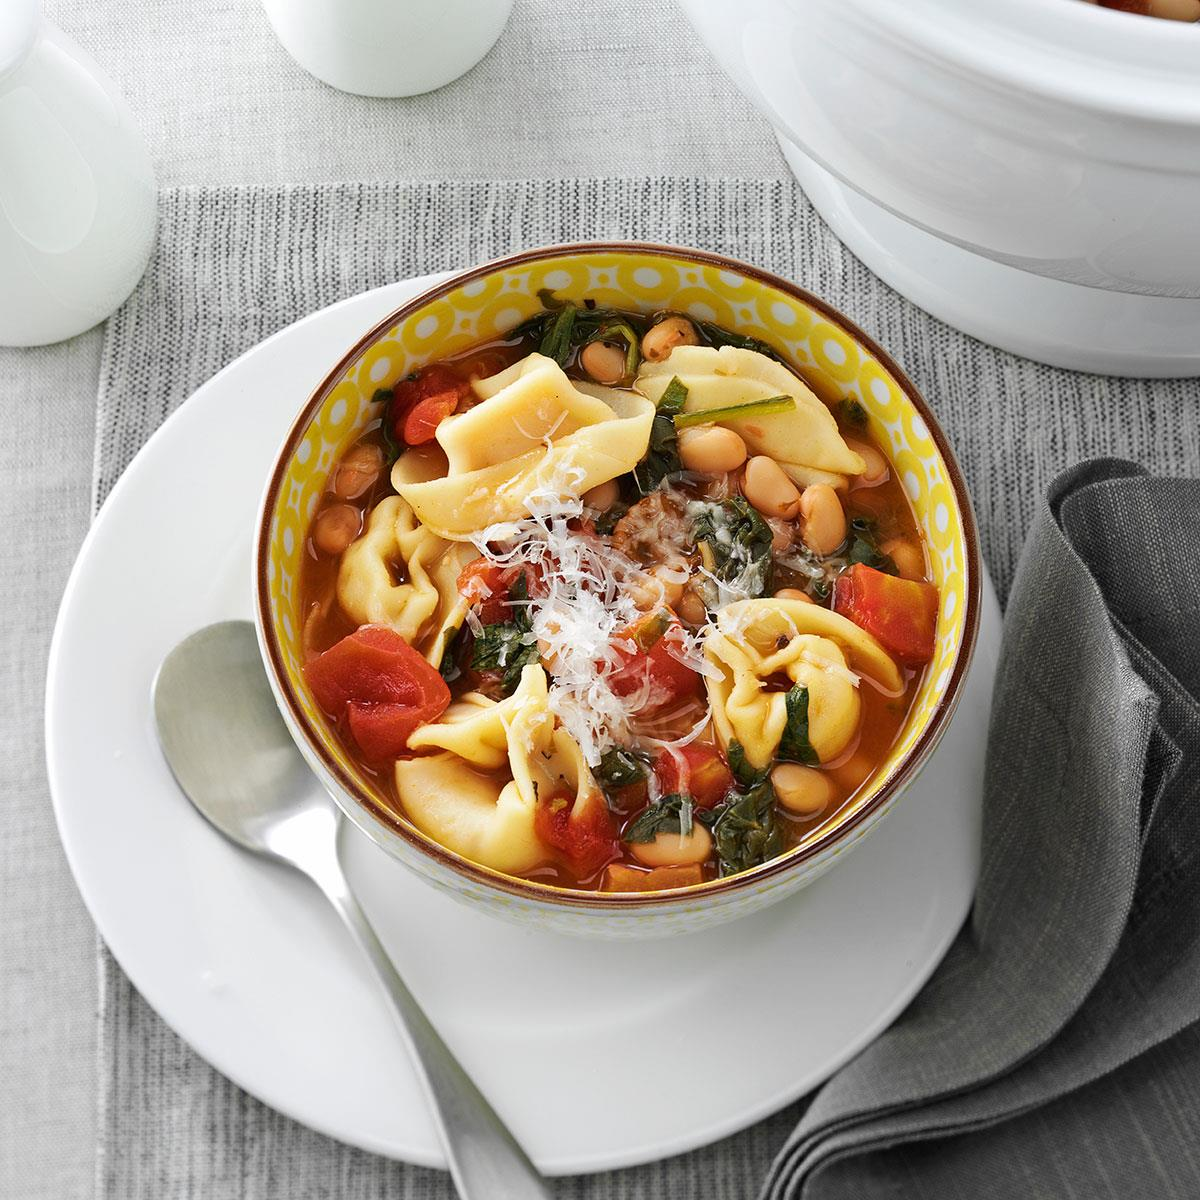 70 Saucy Creamy And Cheesy Italian Christmas Food Recipes: Christmas Tortellini & Spinach Soup Recipe